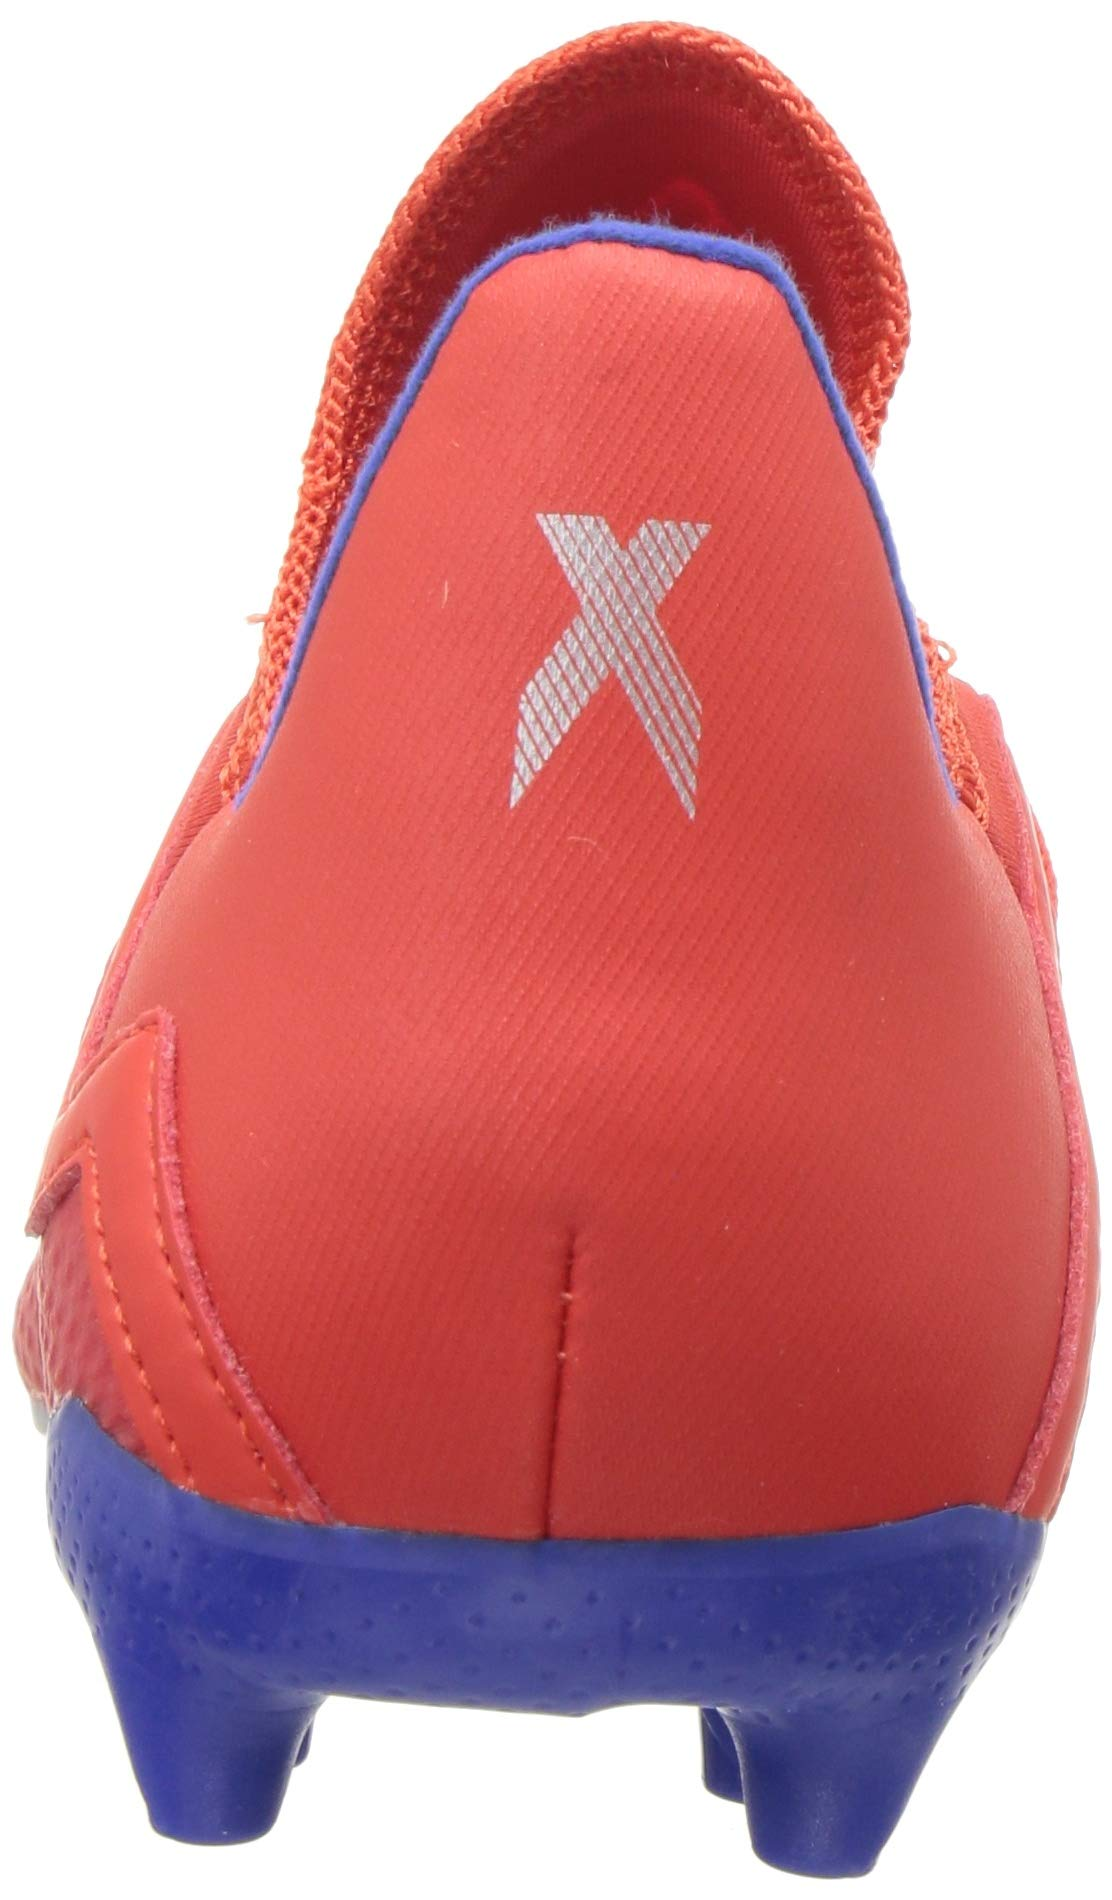 adidas X 18.3 Firm Ground, Active red/Silver Metallic/Bold Blue 13K M US Little Kid by adidas (Image #2)